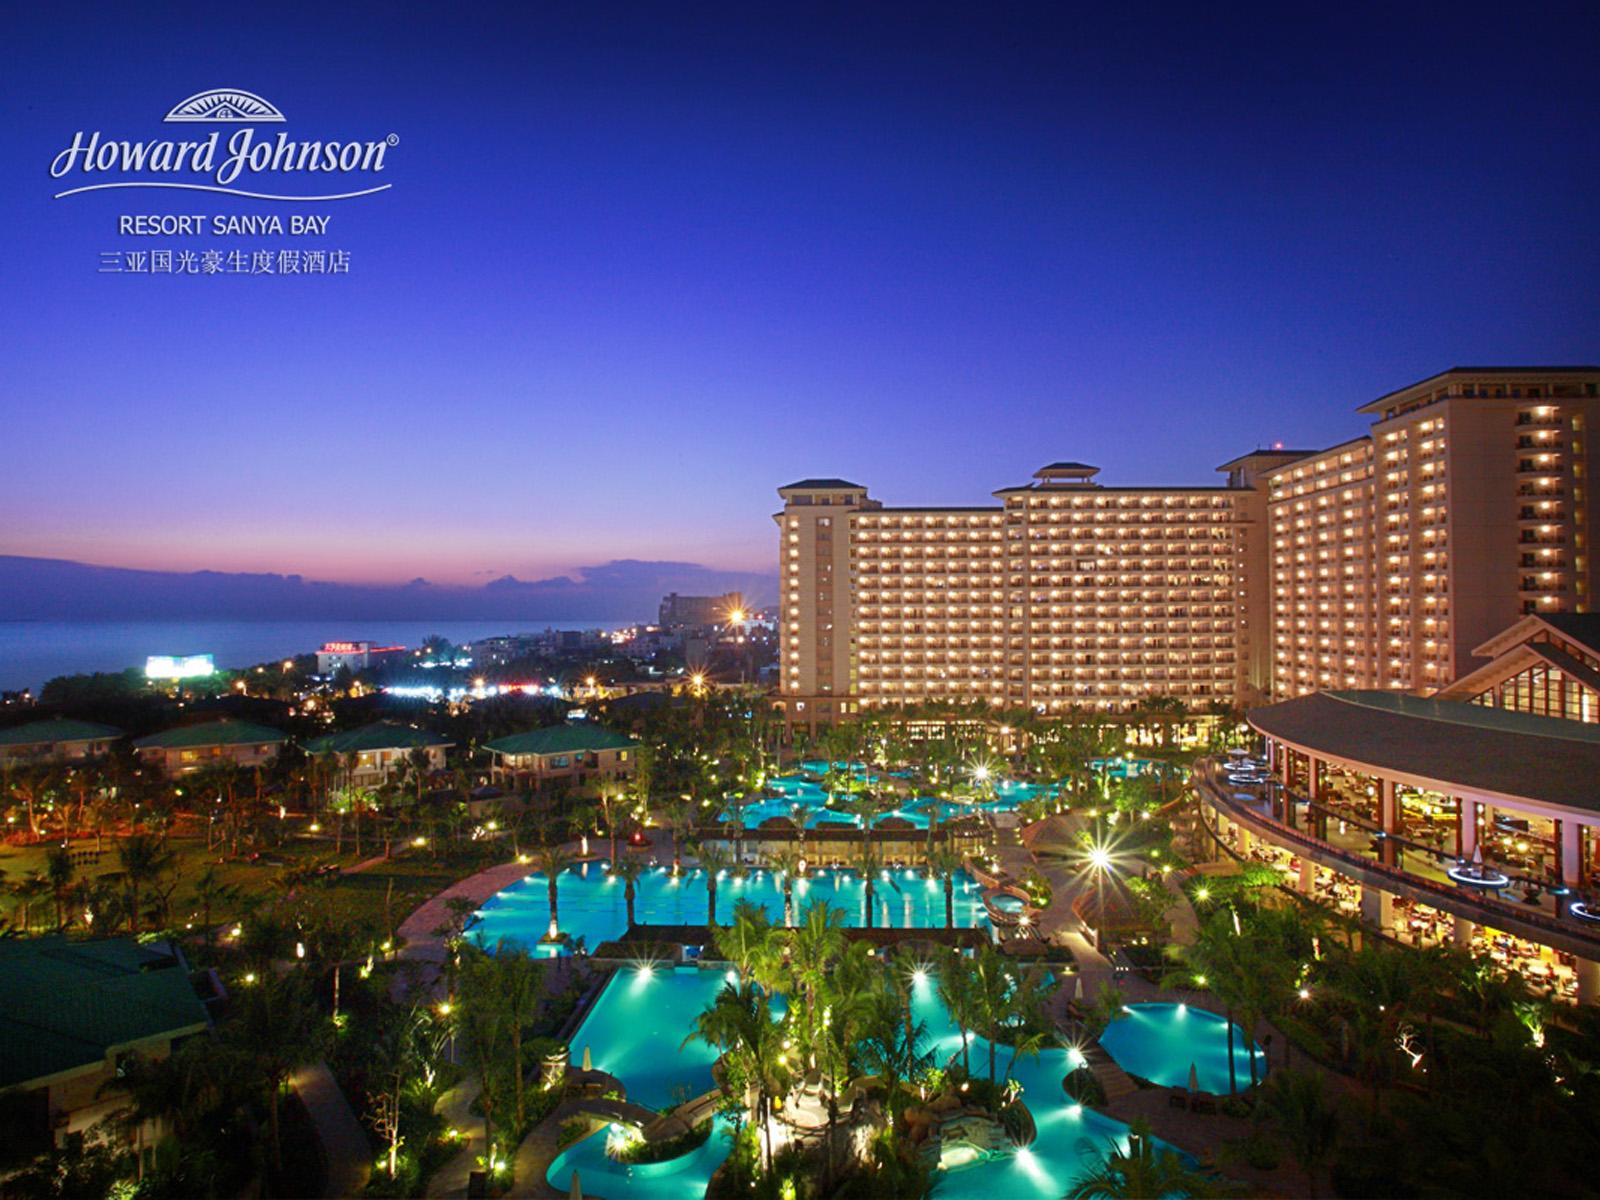 Howard Johnson Resort Sanya Bay0